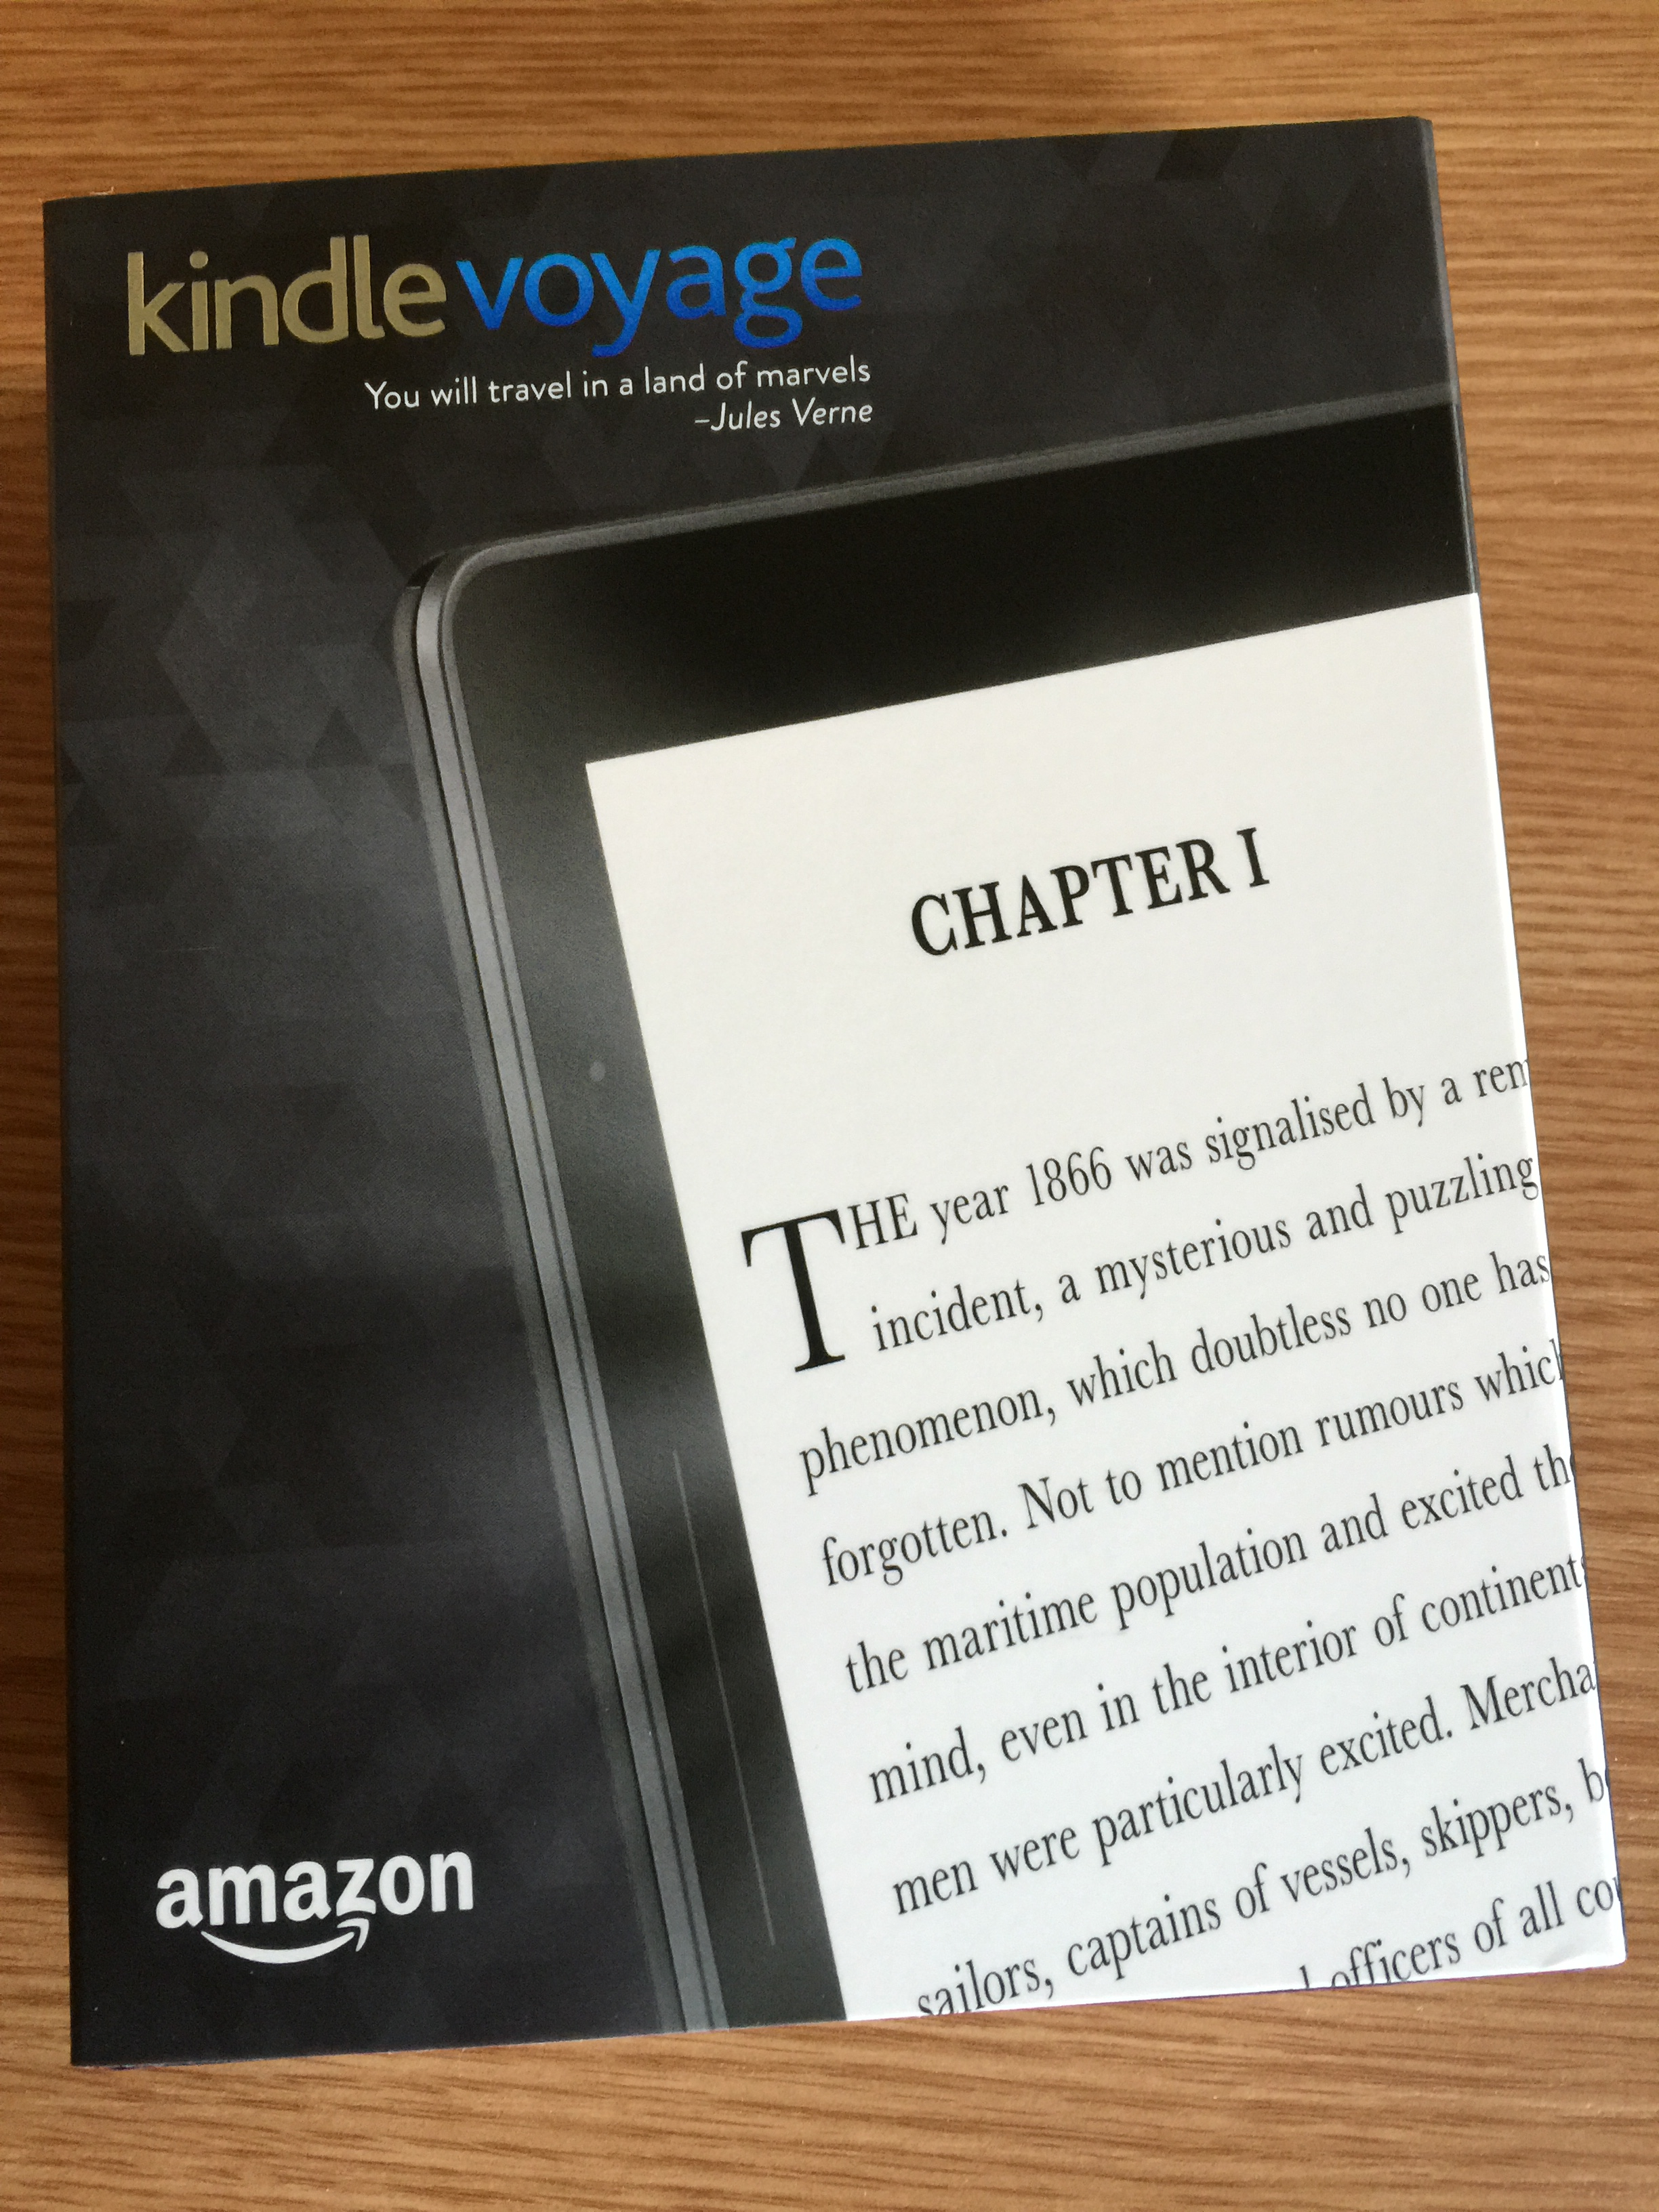 how to load kindle books on ipad